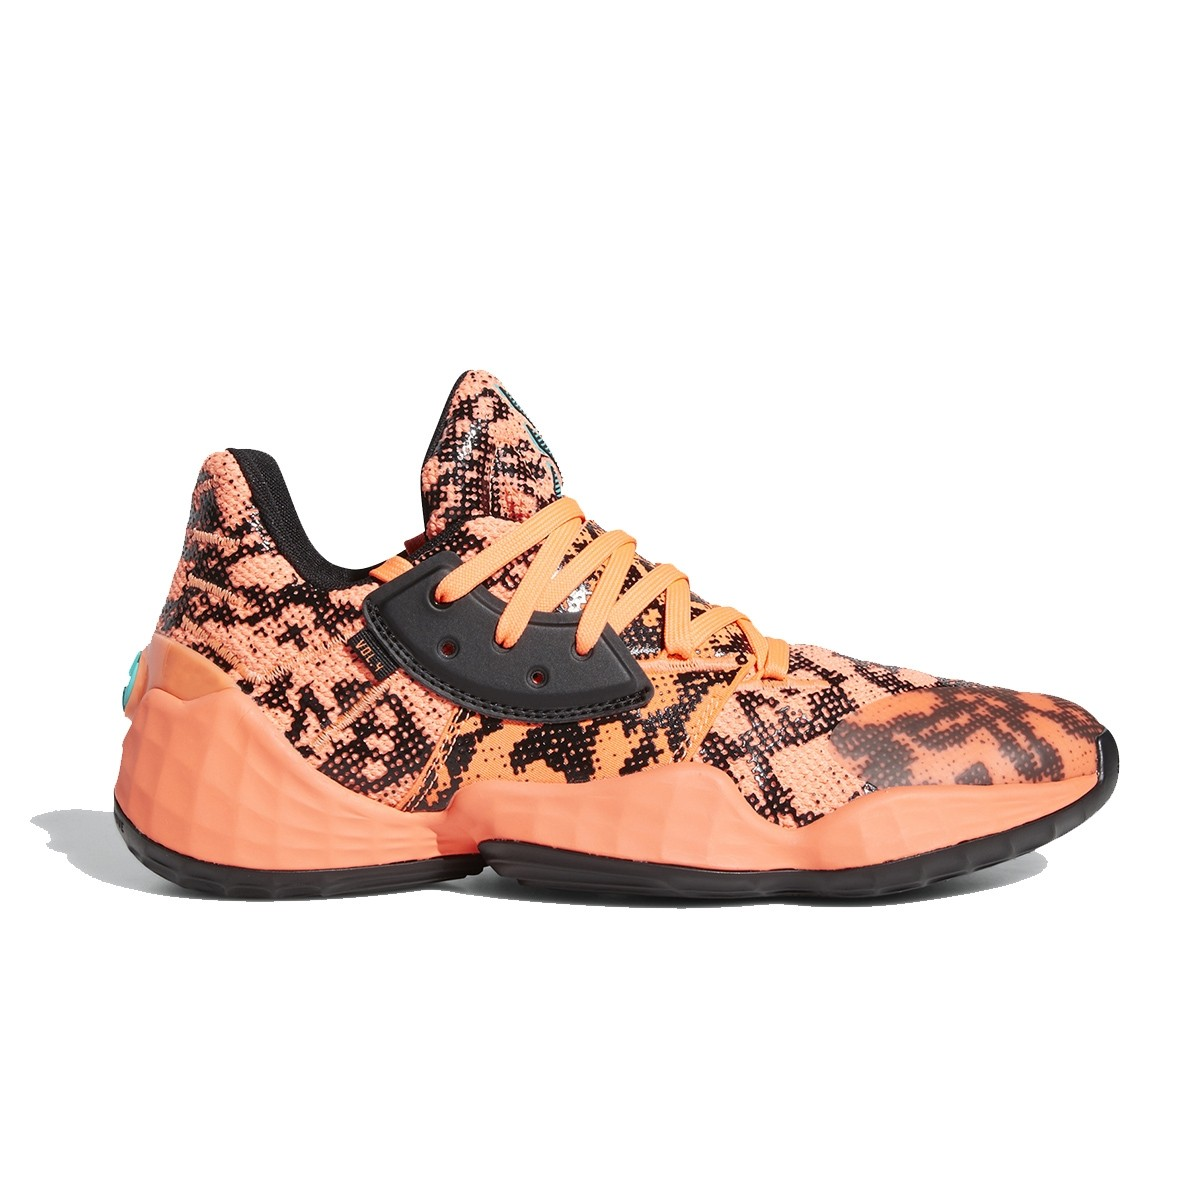 ADIDAS Harden Vol.4 GS 'Gila Monster'